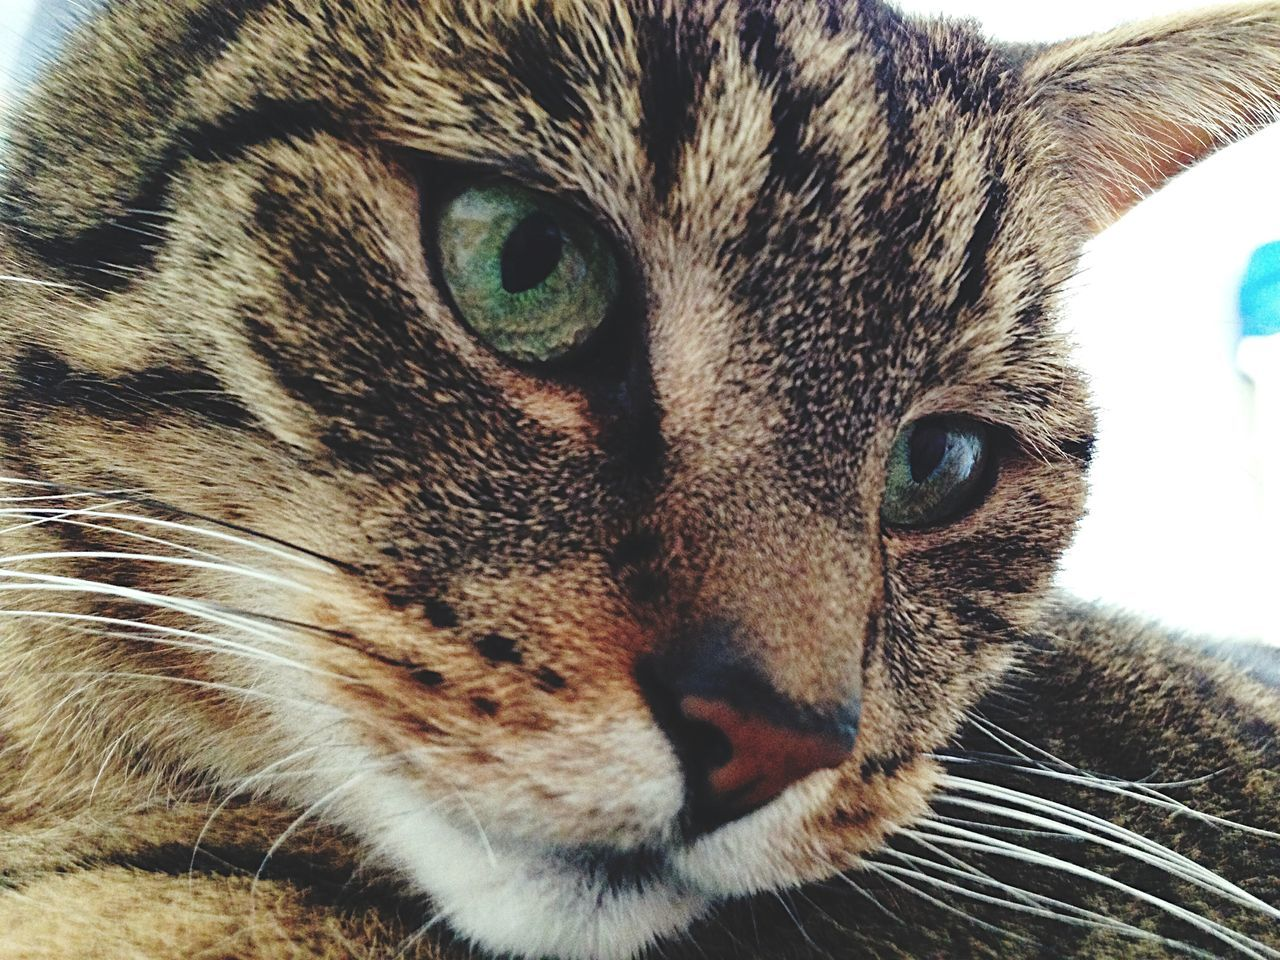 domestic cat, one animal, animal themes, portrait, pets, looking at camera, whisker, close-up, feline, mammal, domestic animals, animal head, no people, indoors, day, yellow eyes